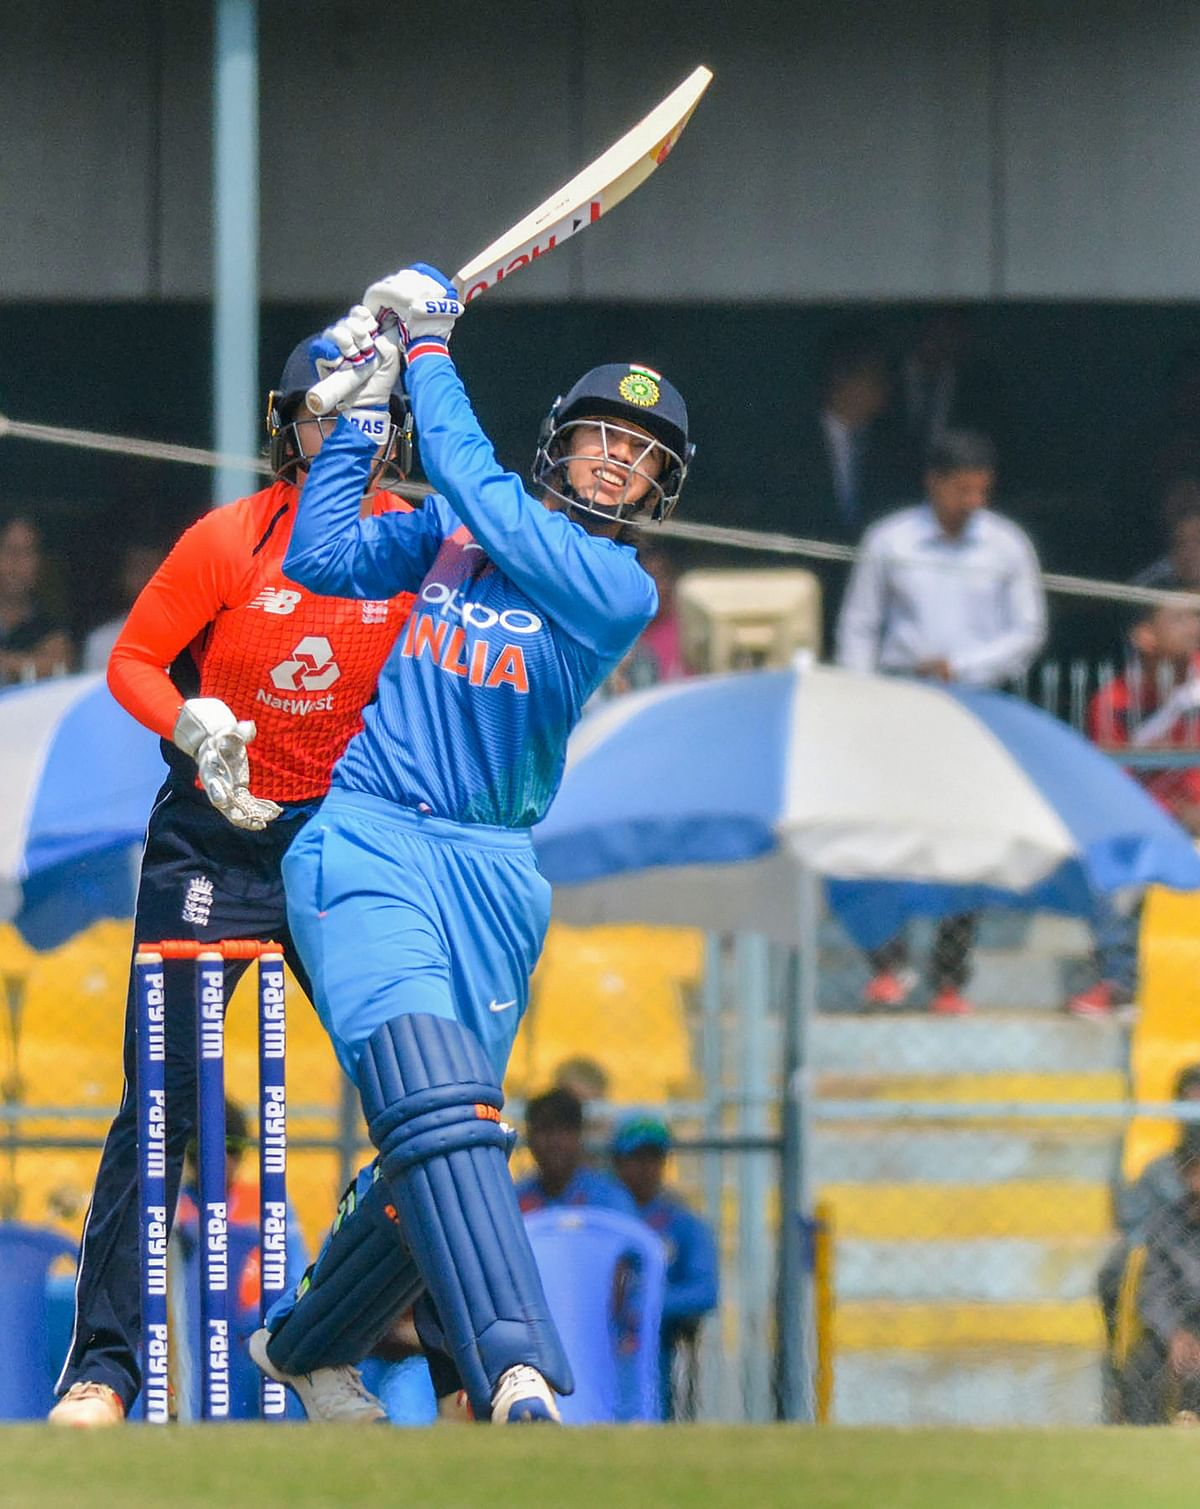 Smriti Mandhana's wicket was important for England as the opener had powered India to 24 for no loss in 2.3 overs.